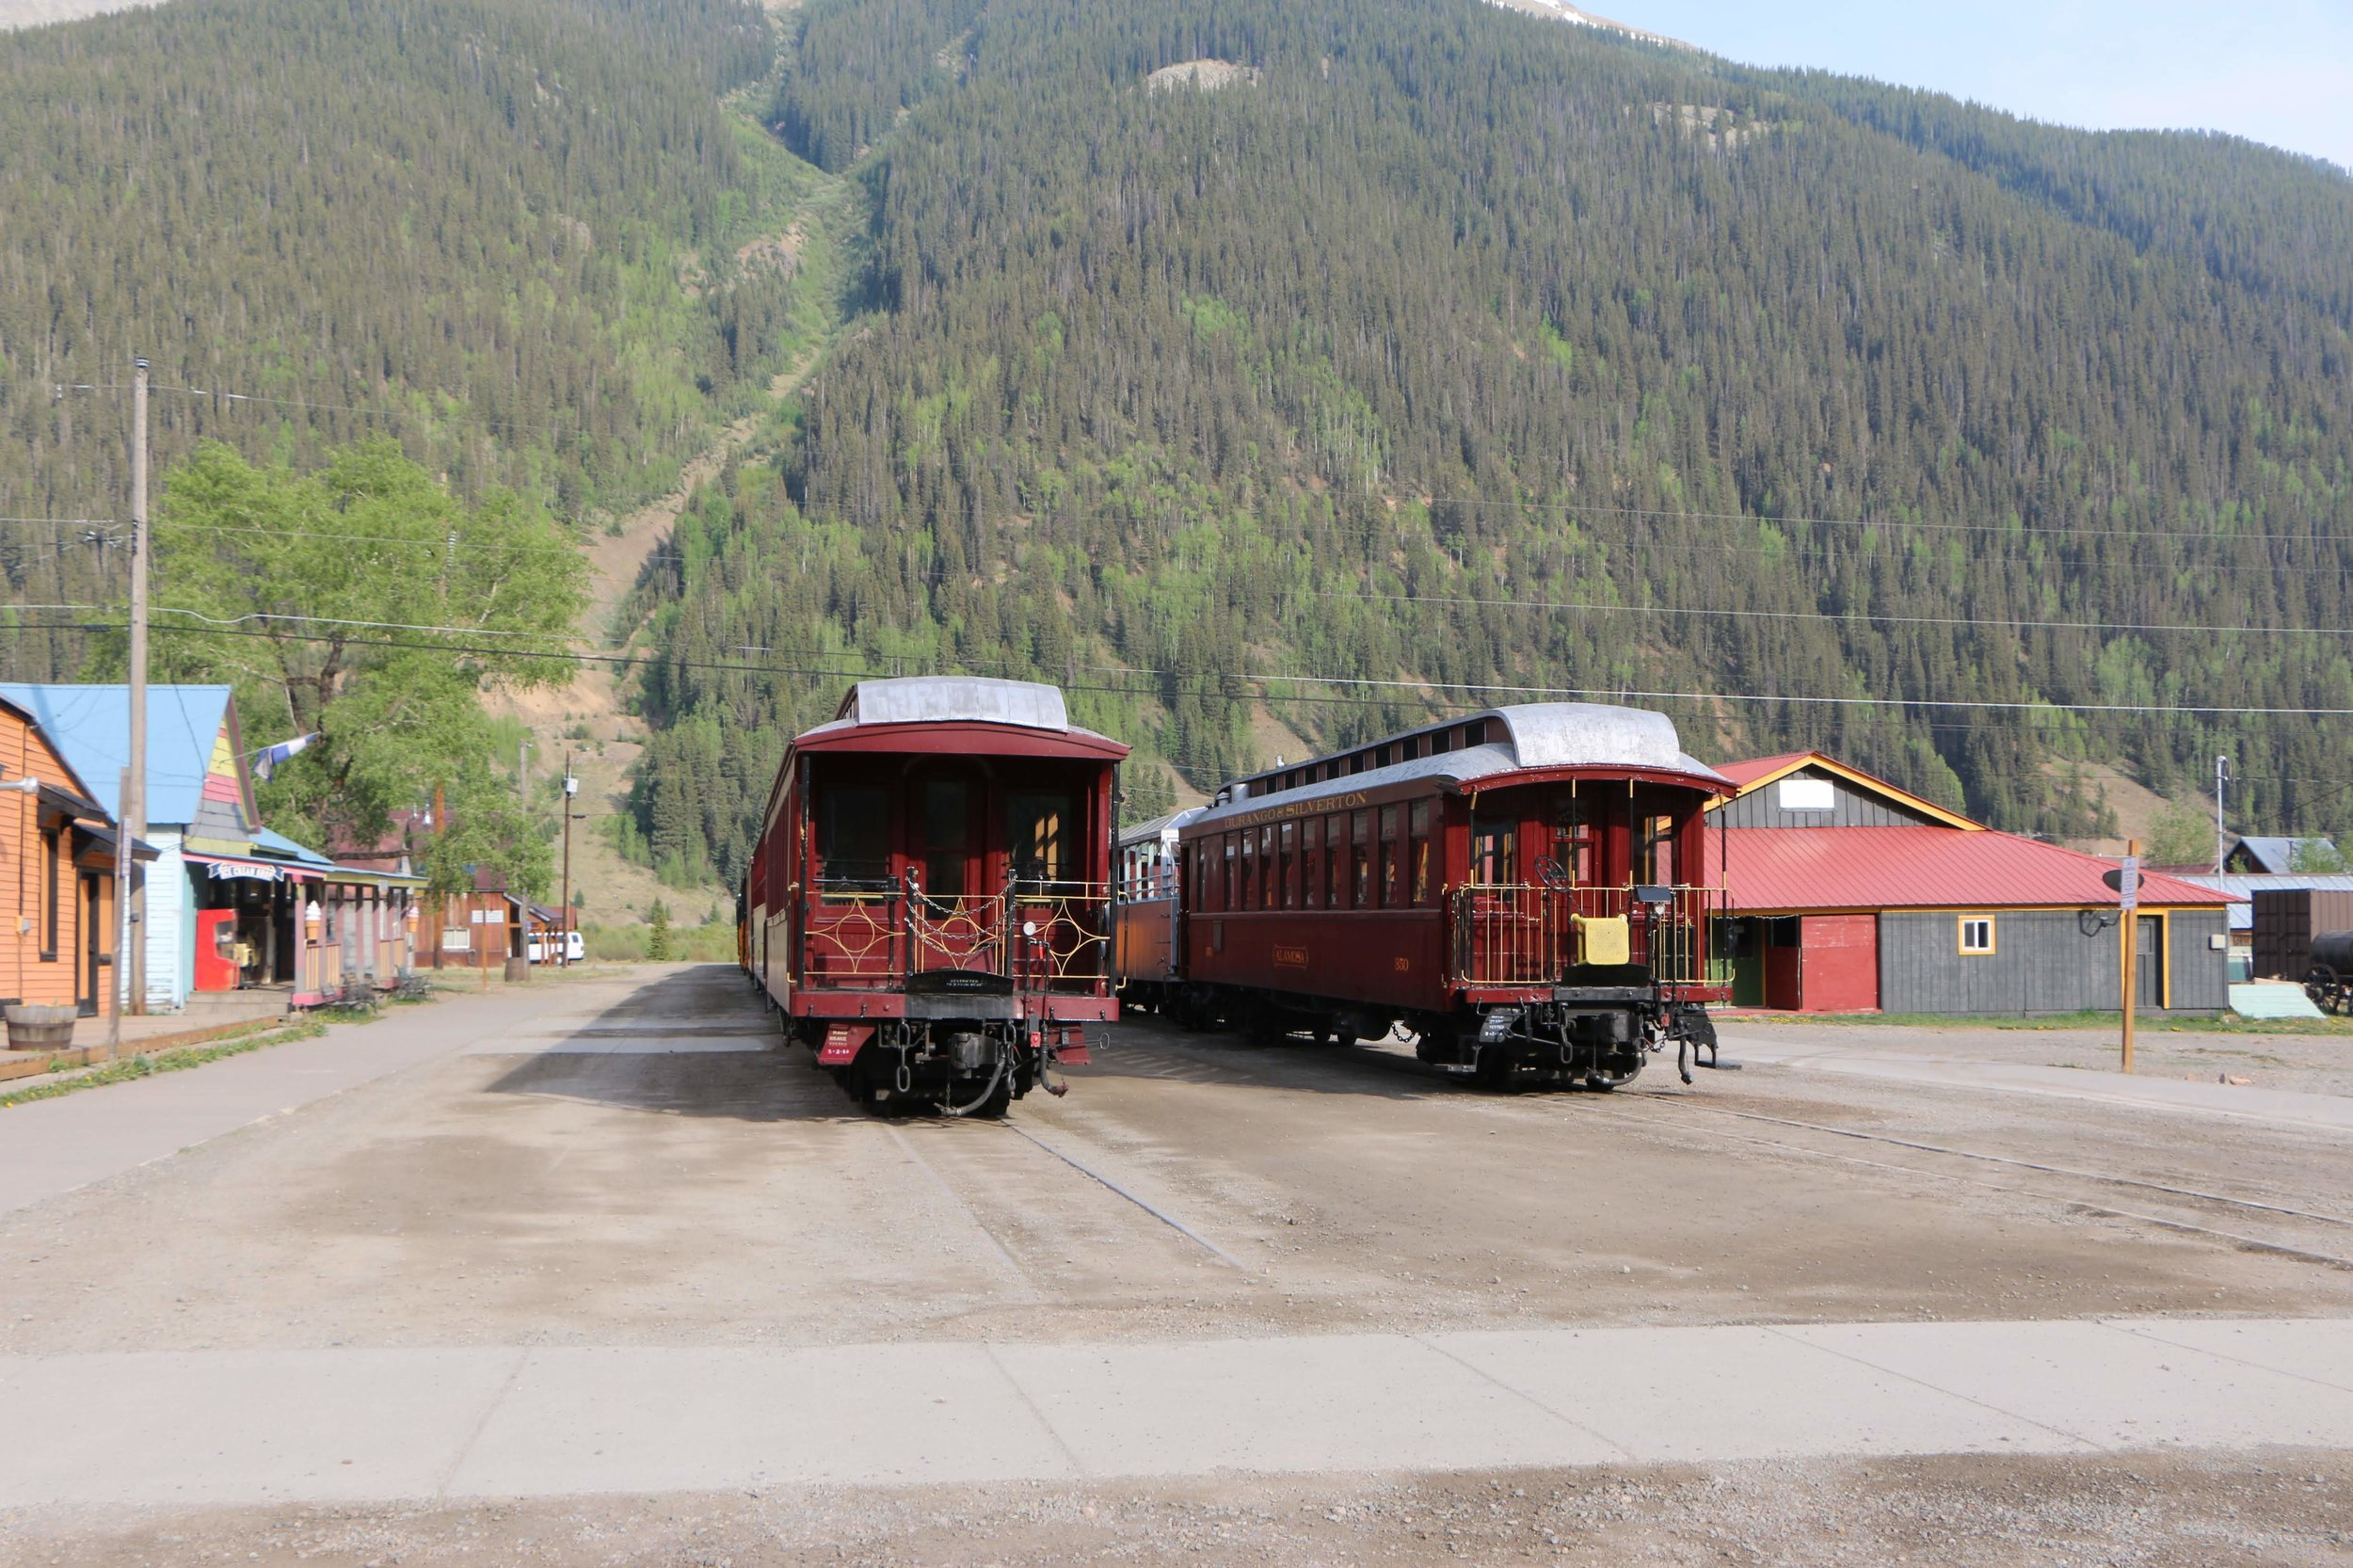 Trains parked indefinitely in Silverton, photo by Priscilla Sherman